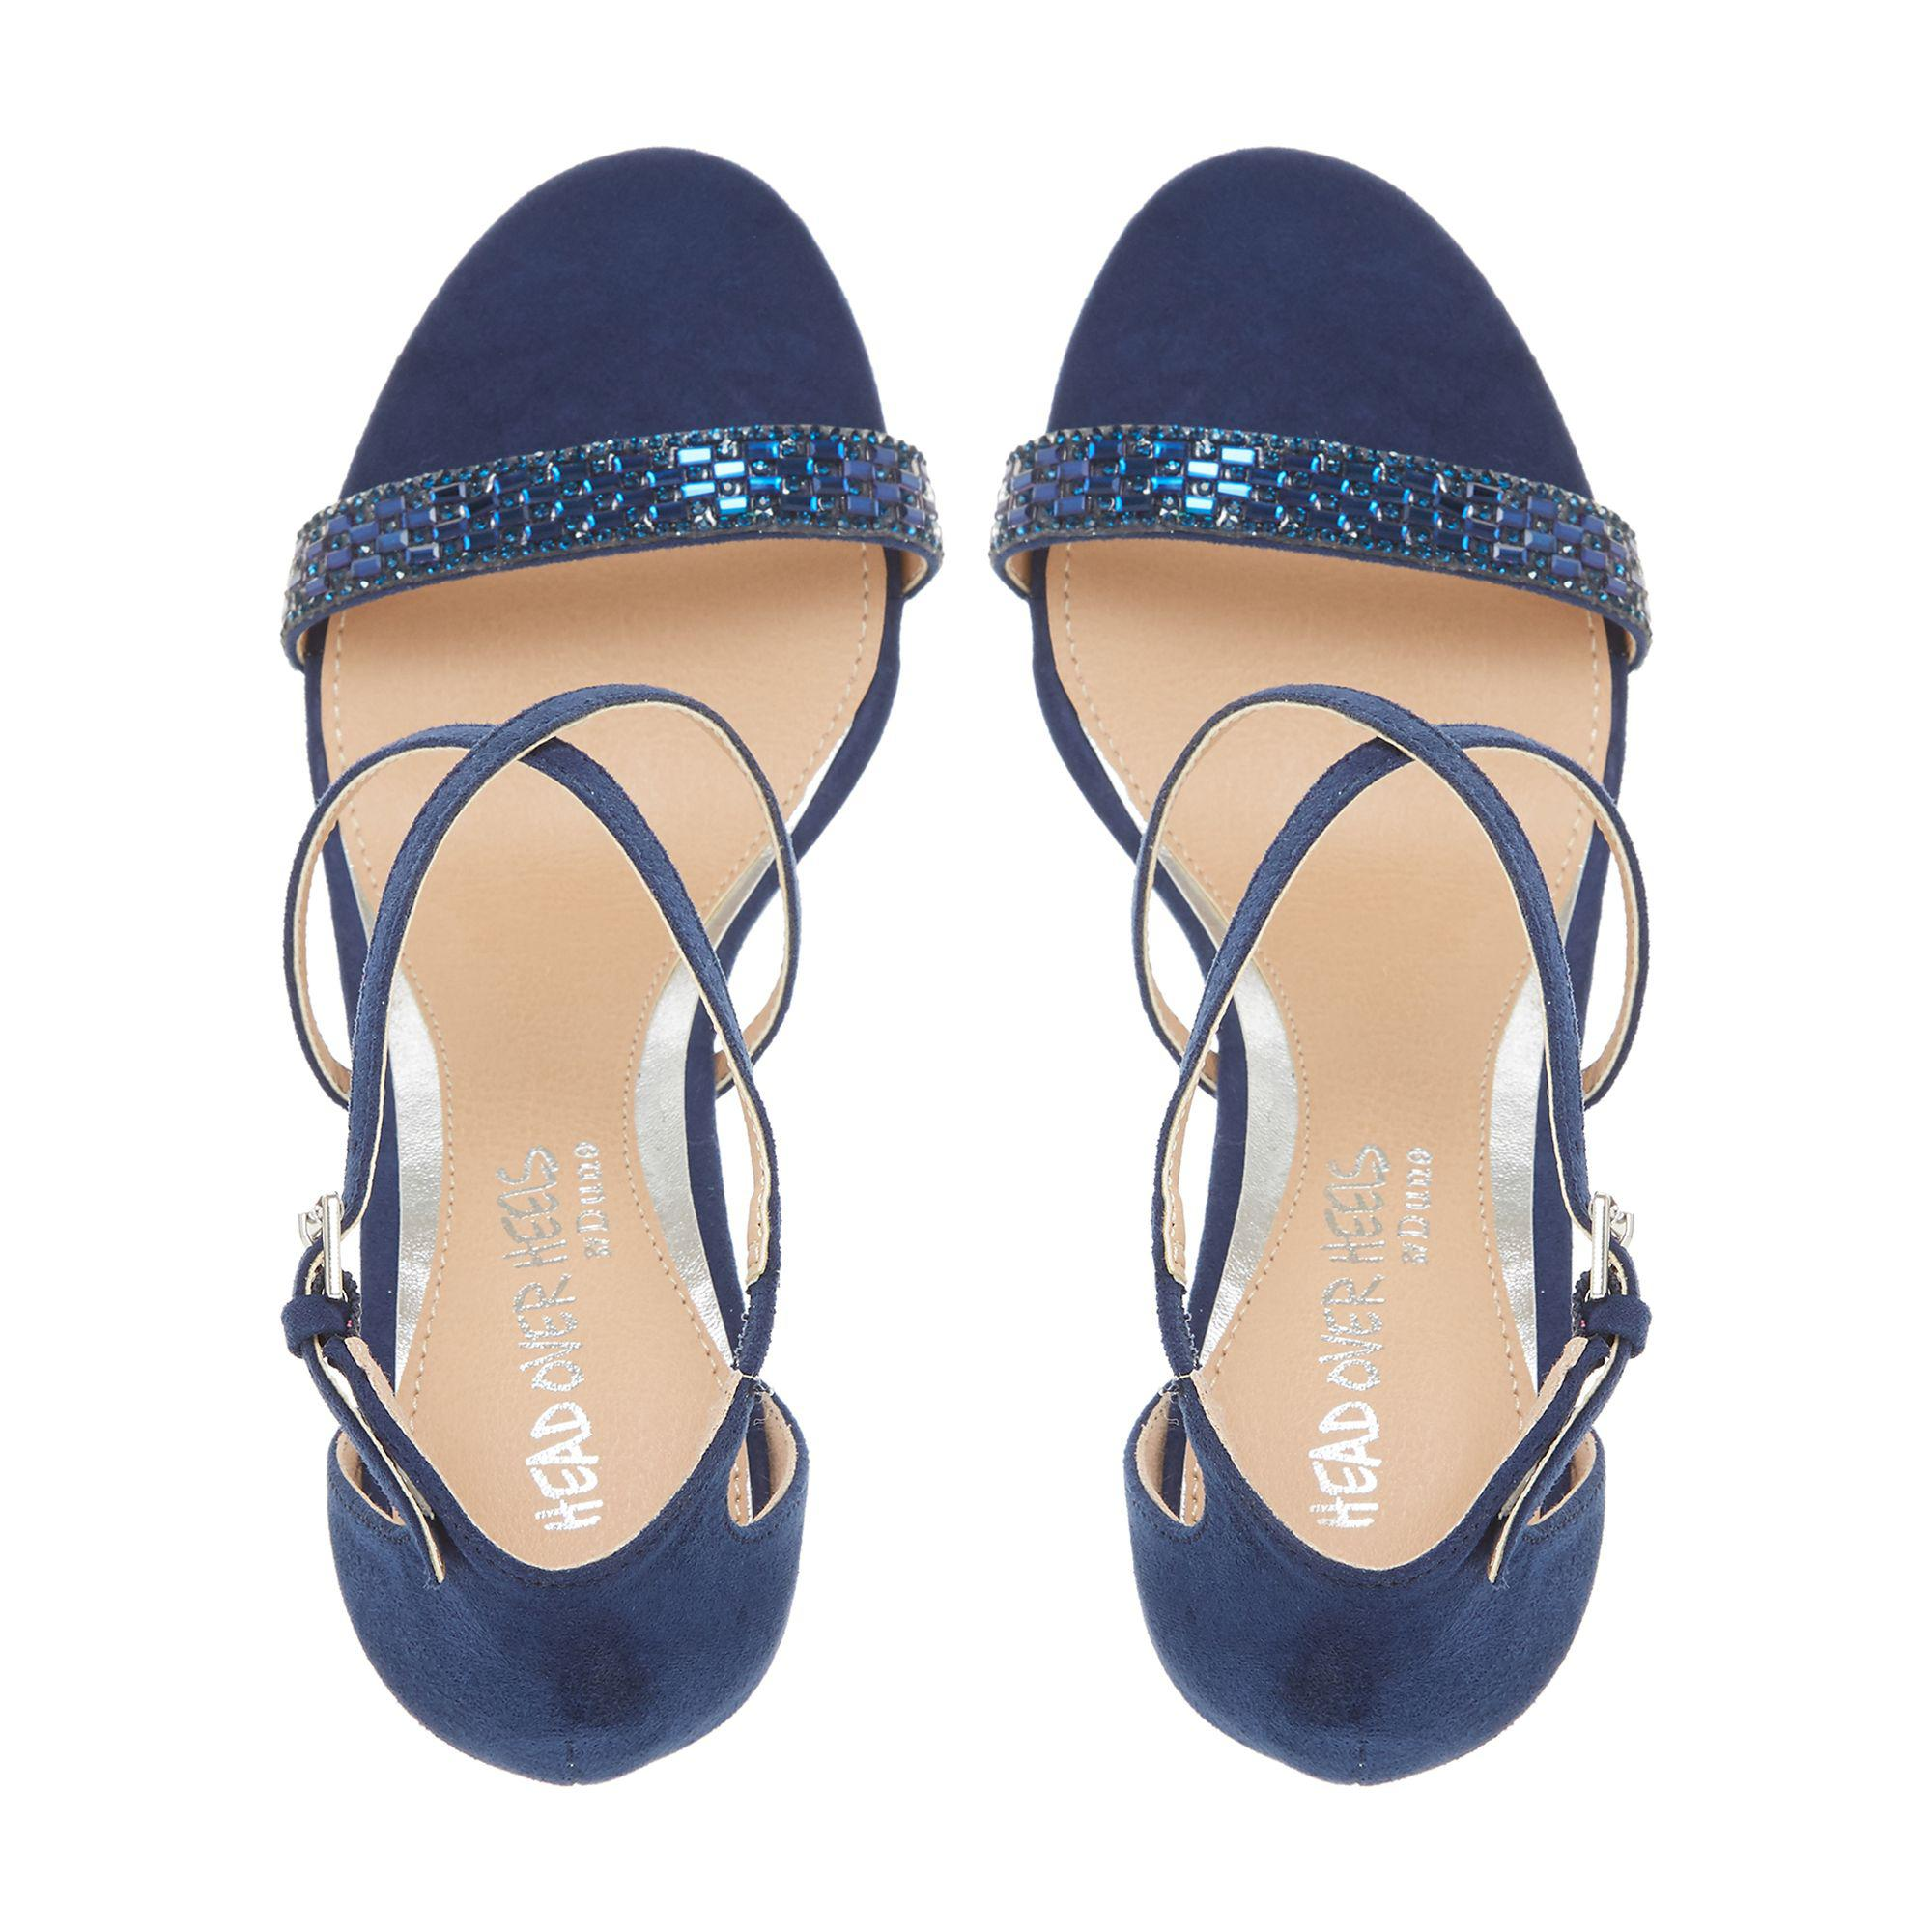 f0d684b5341d Dune Navy  missy  Ankle Strap Sandals in Blue - Lyst